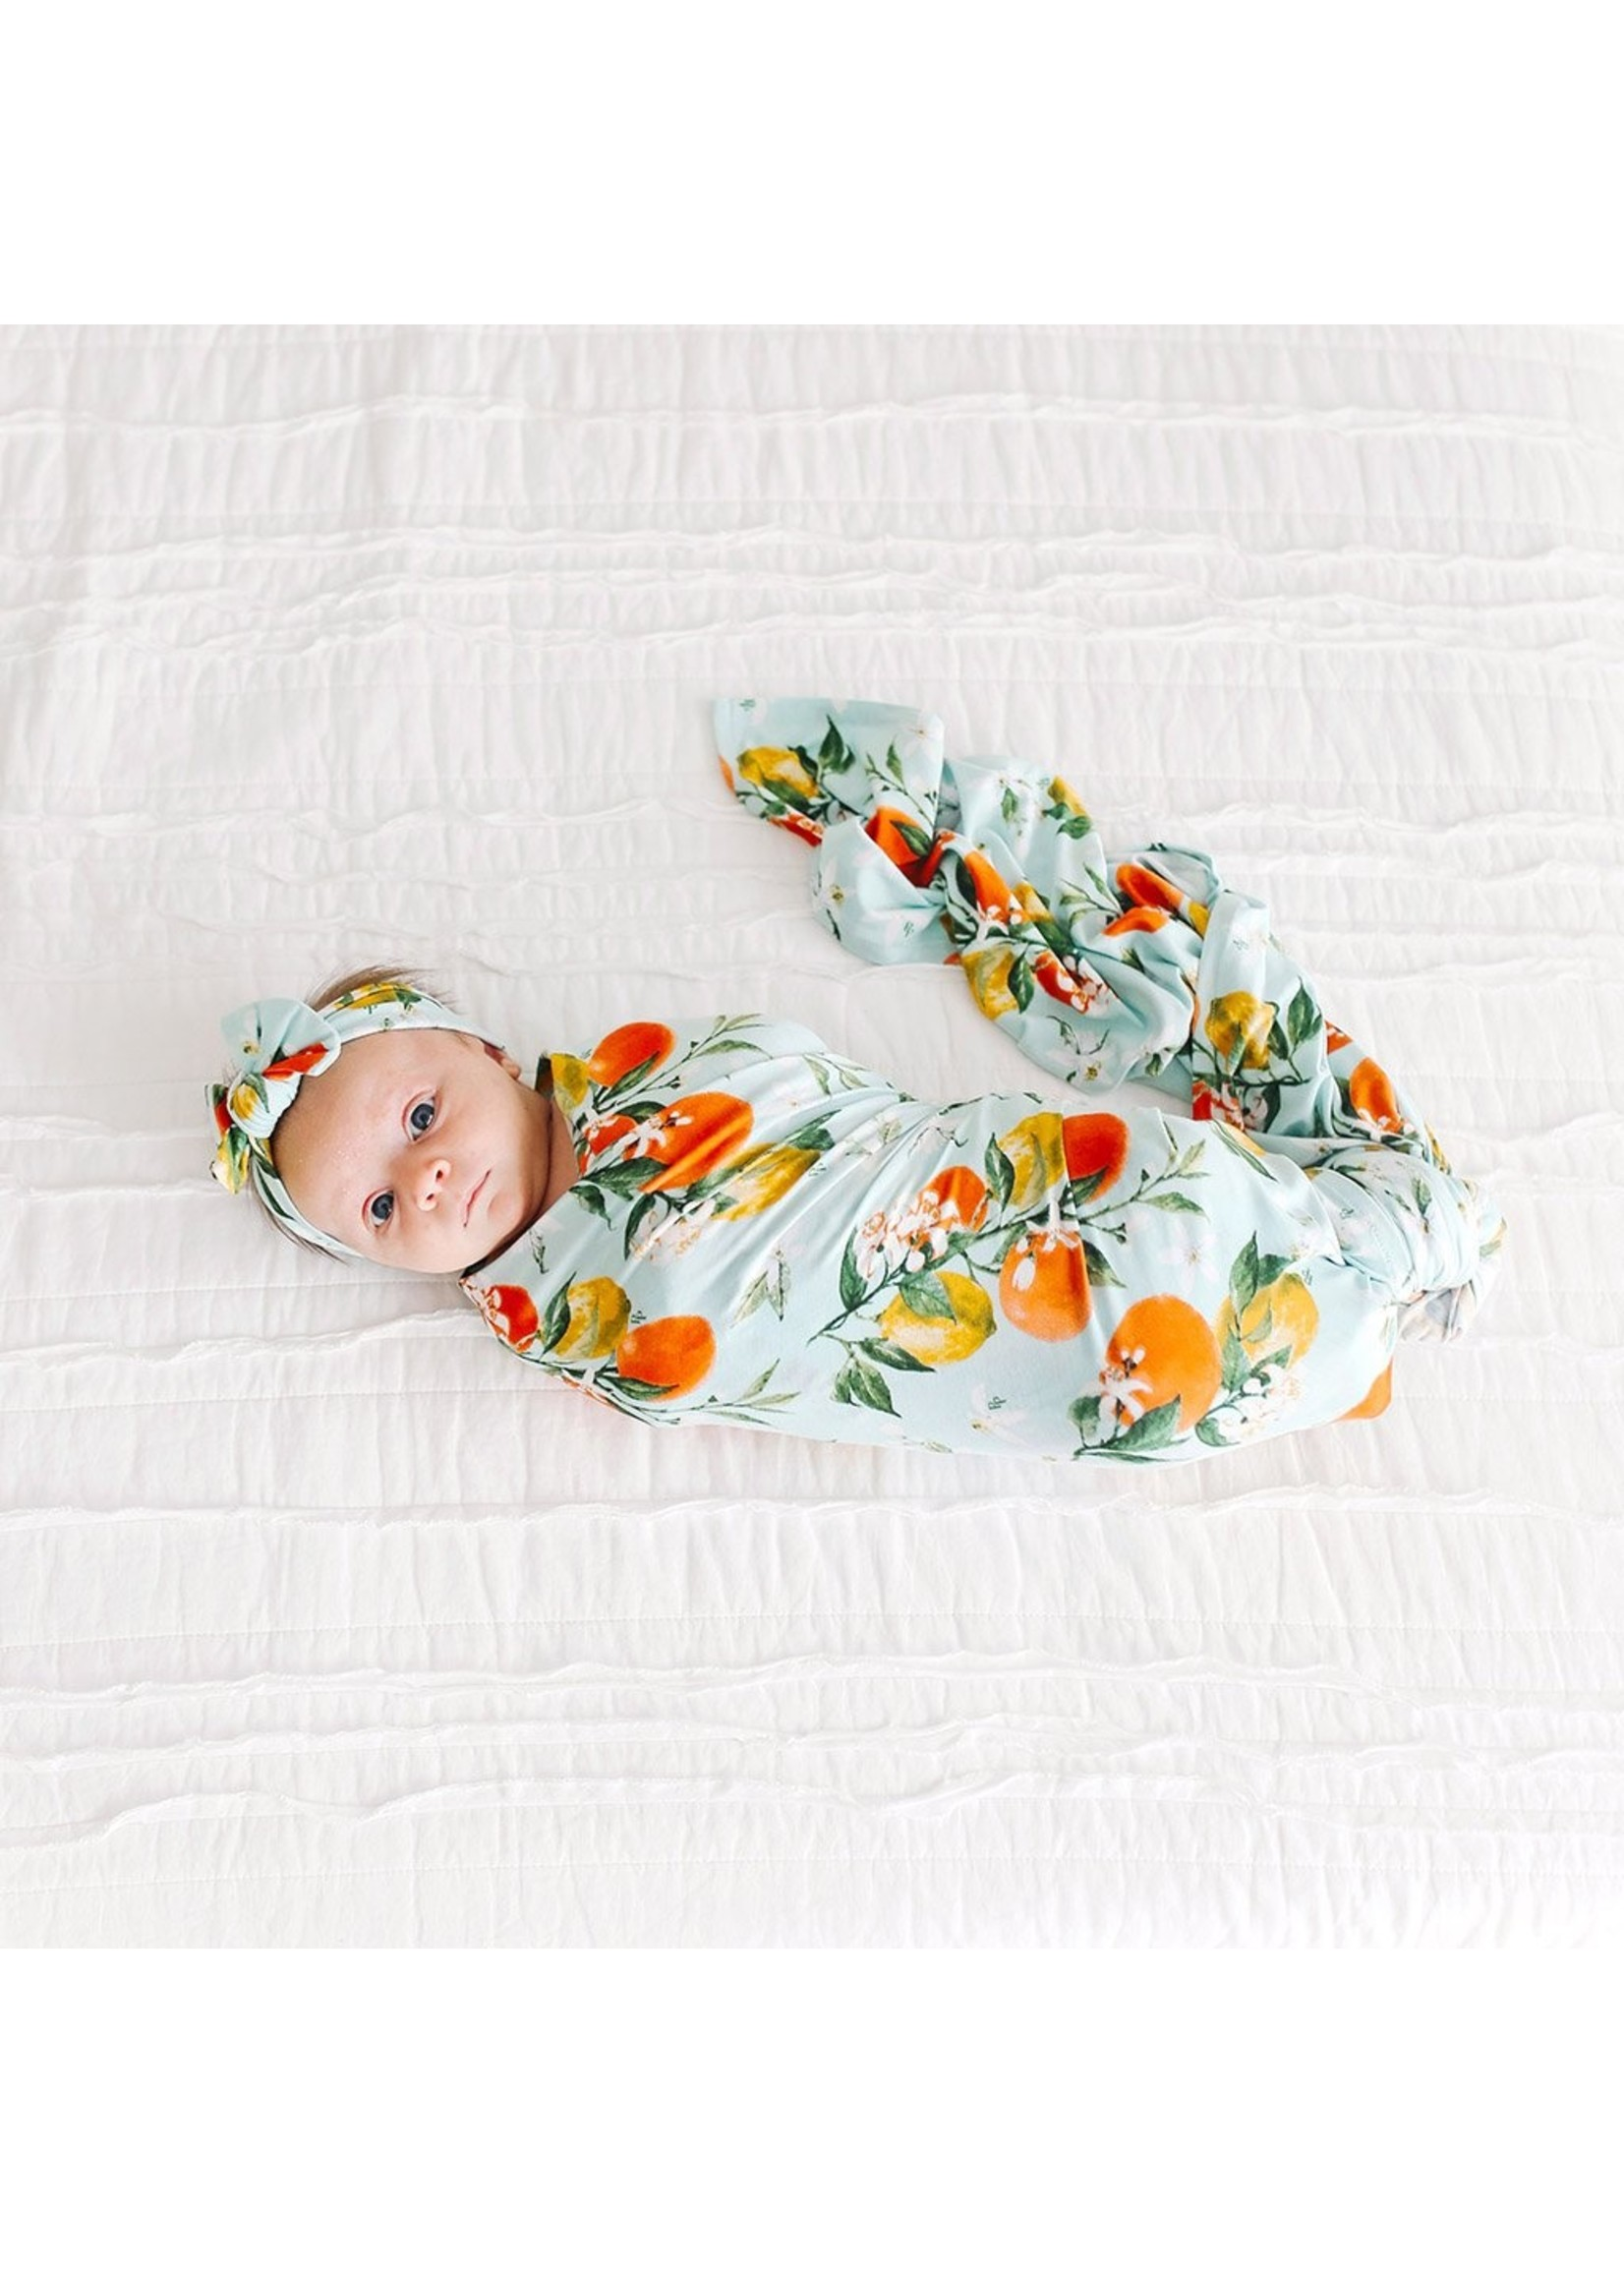 posh peanut Mirabella - Infant Swaddle and Headwrap Set